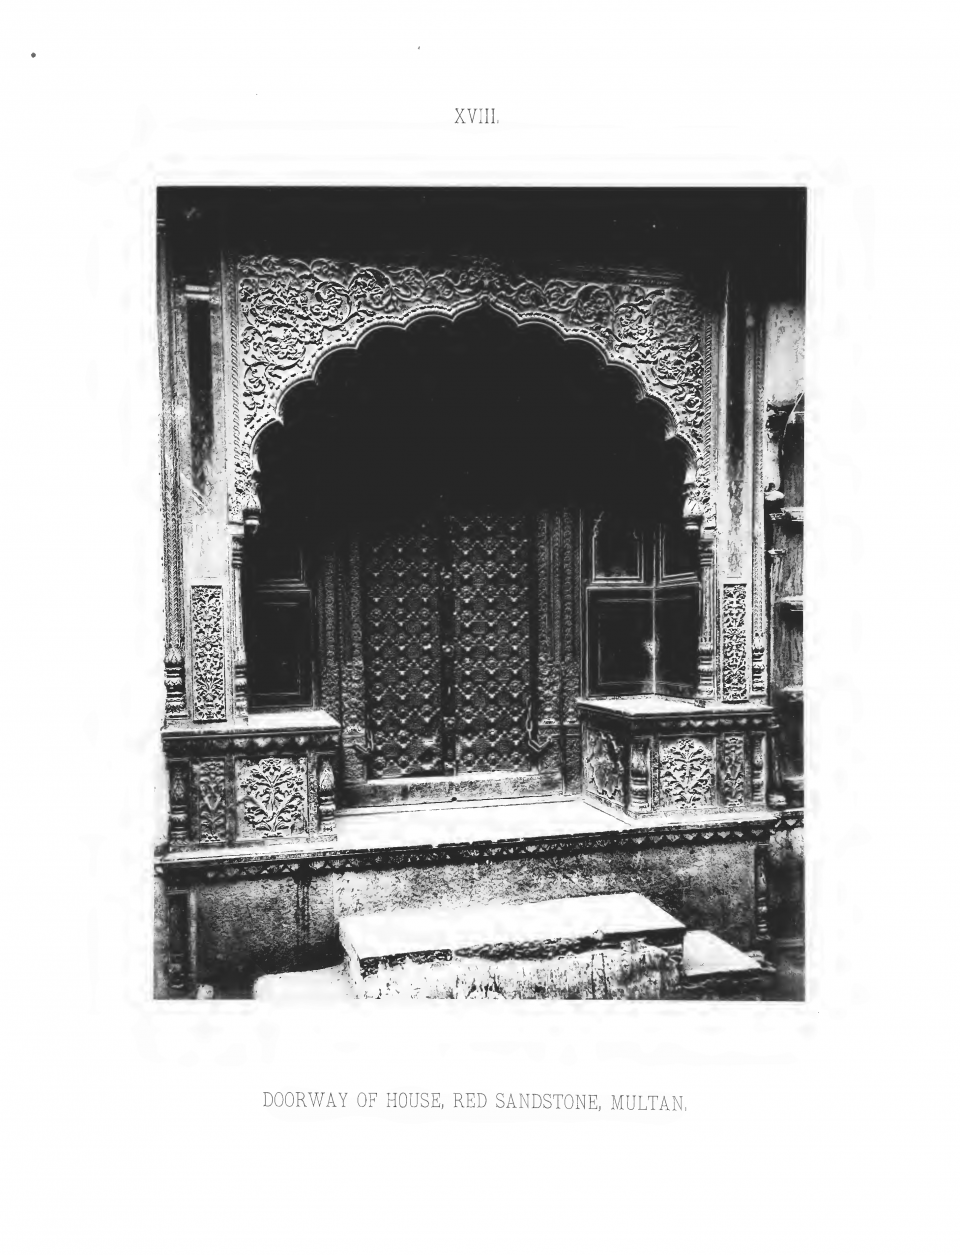 PLATE XVIII. DOORWAY OF HOUSE, RED SANDSTONE, MULTAN.